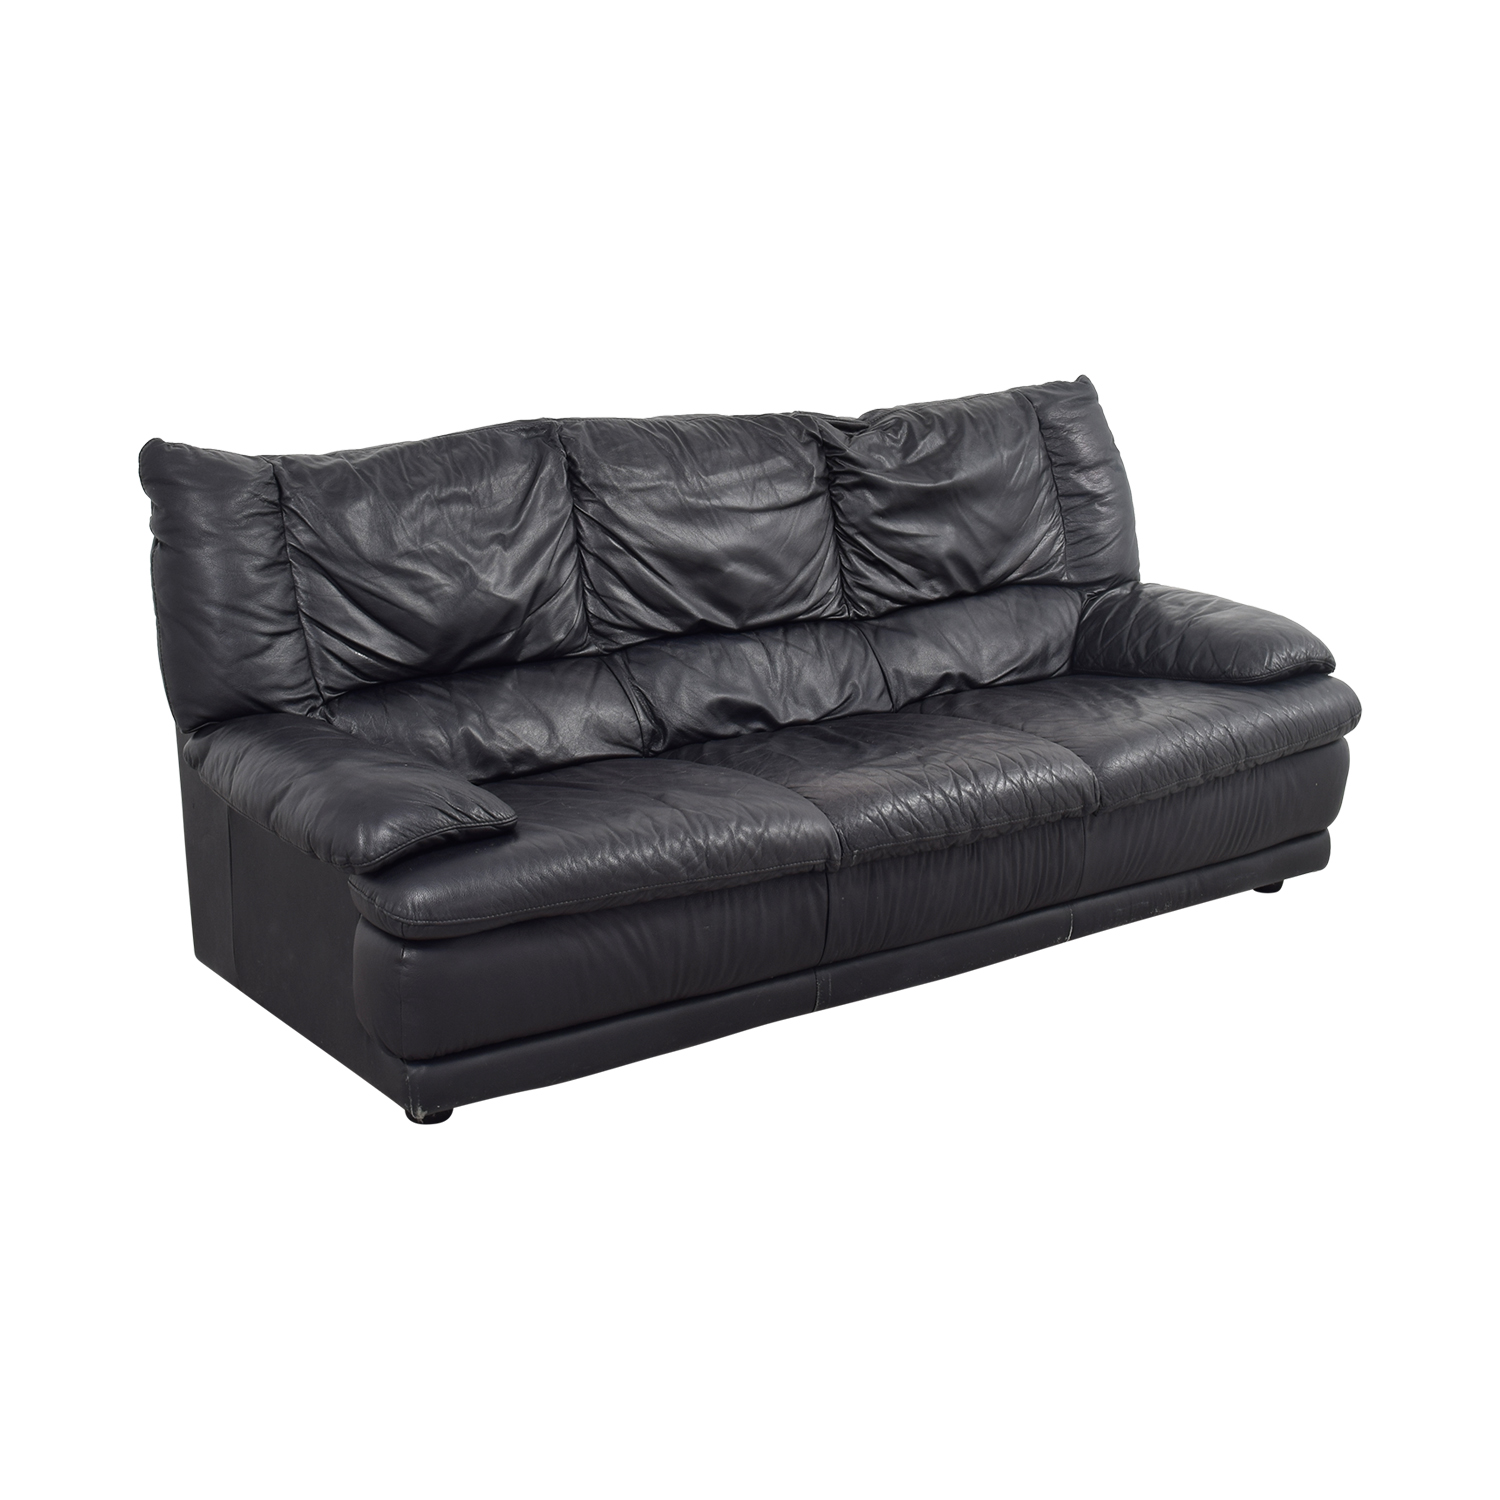 57 Off Ikea Ikea Black Leather Sofa Sofas